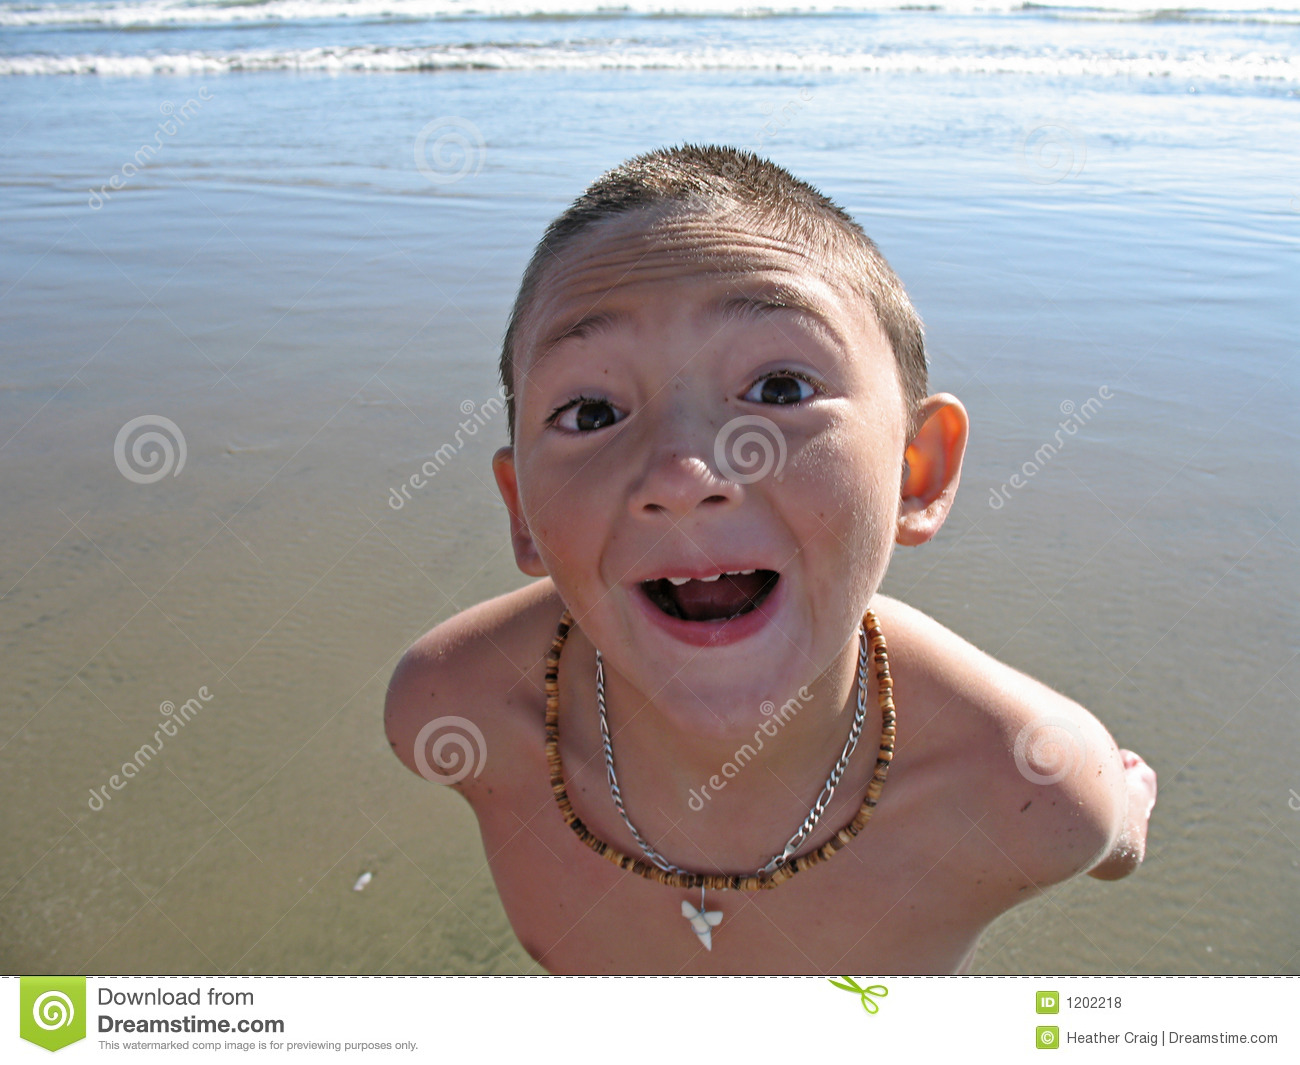 Boy at the Beach: Wide Angle Headshot